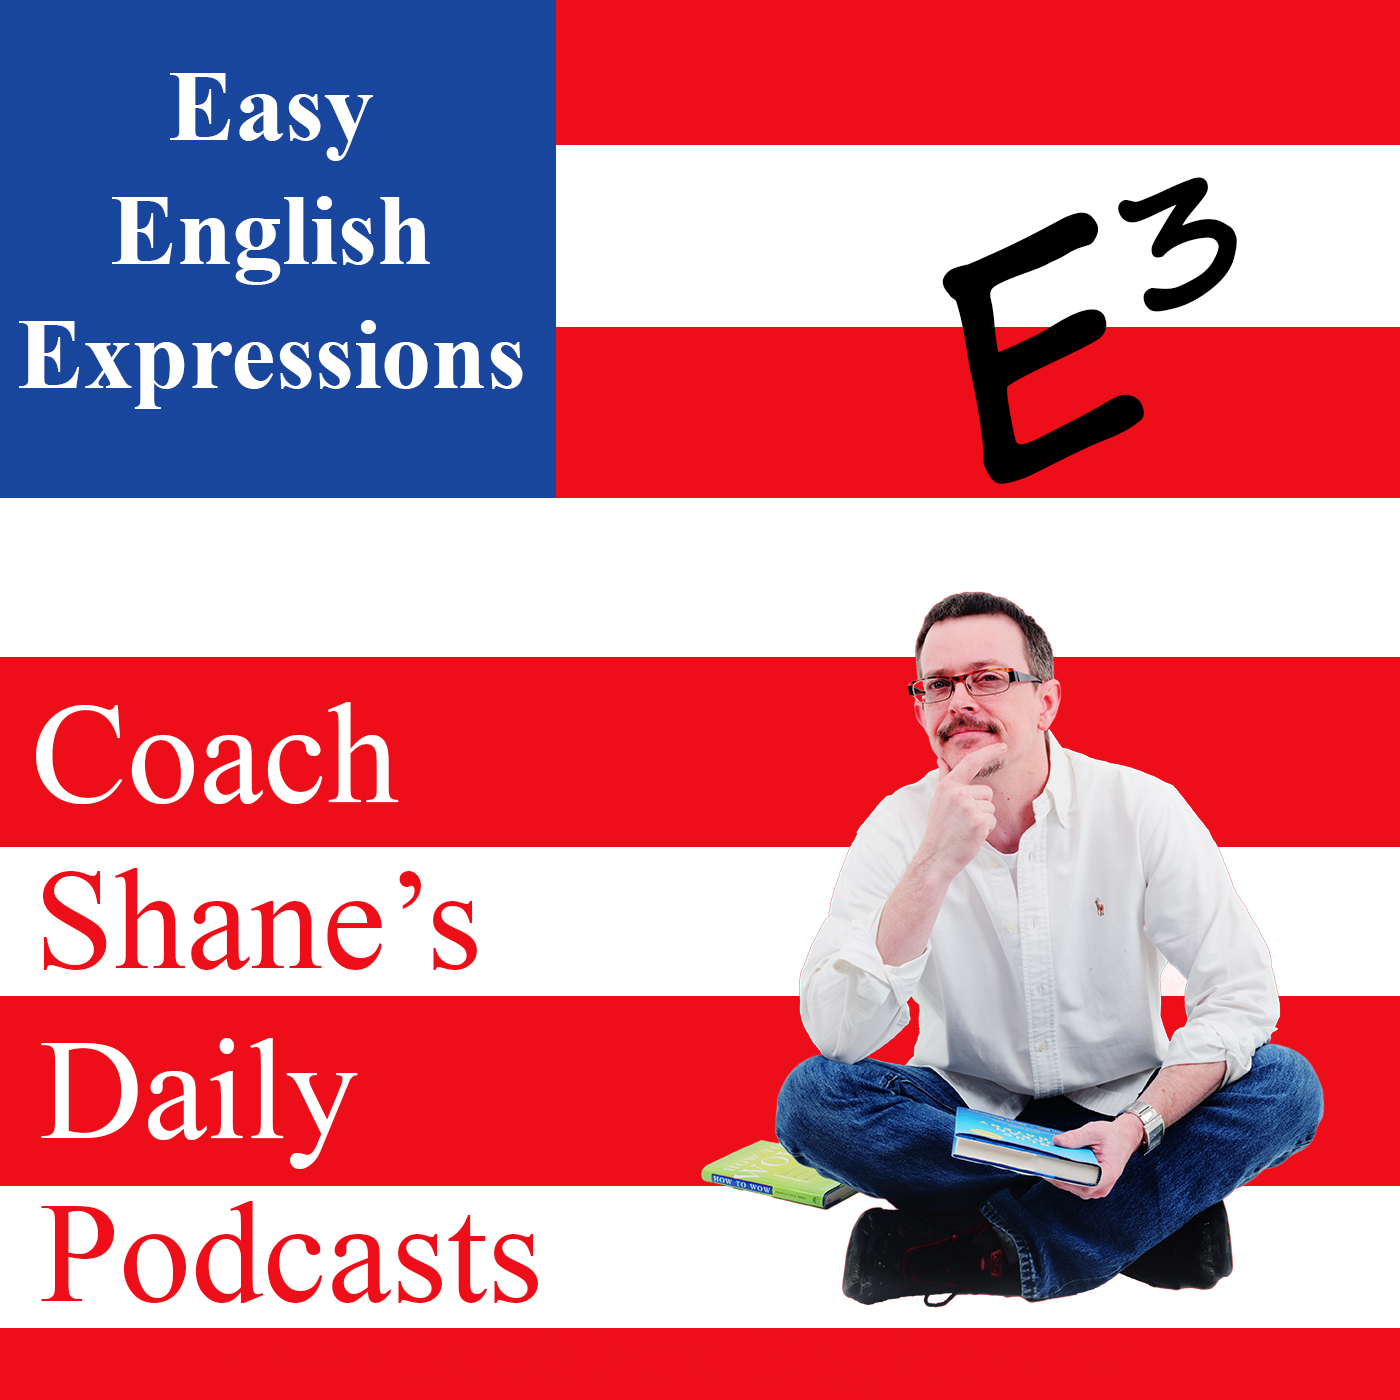 31 Daily Easy English Expression PODCAST—Count me IN/OUT